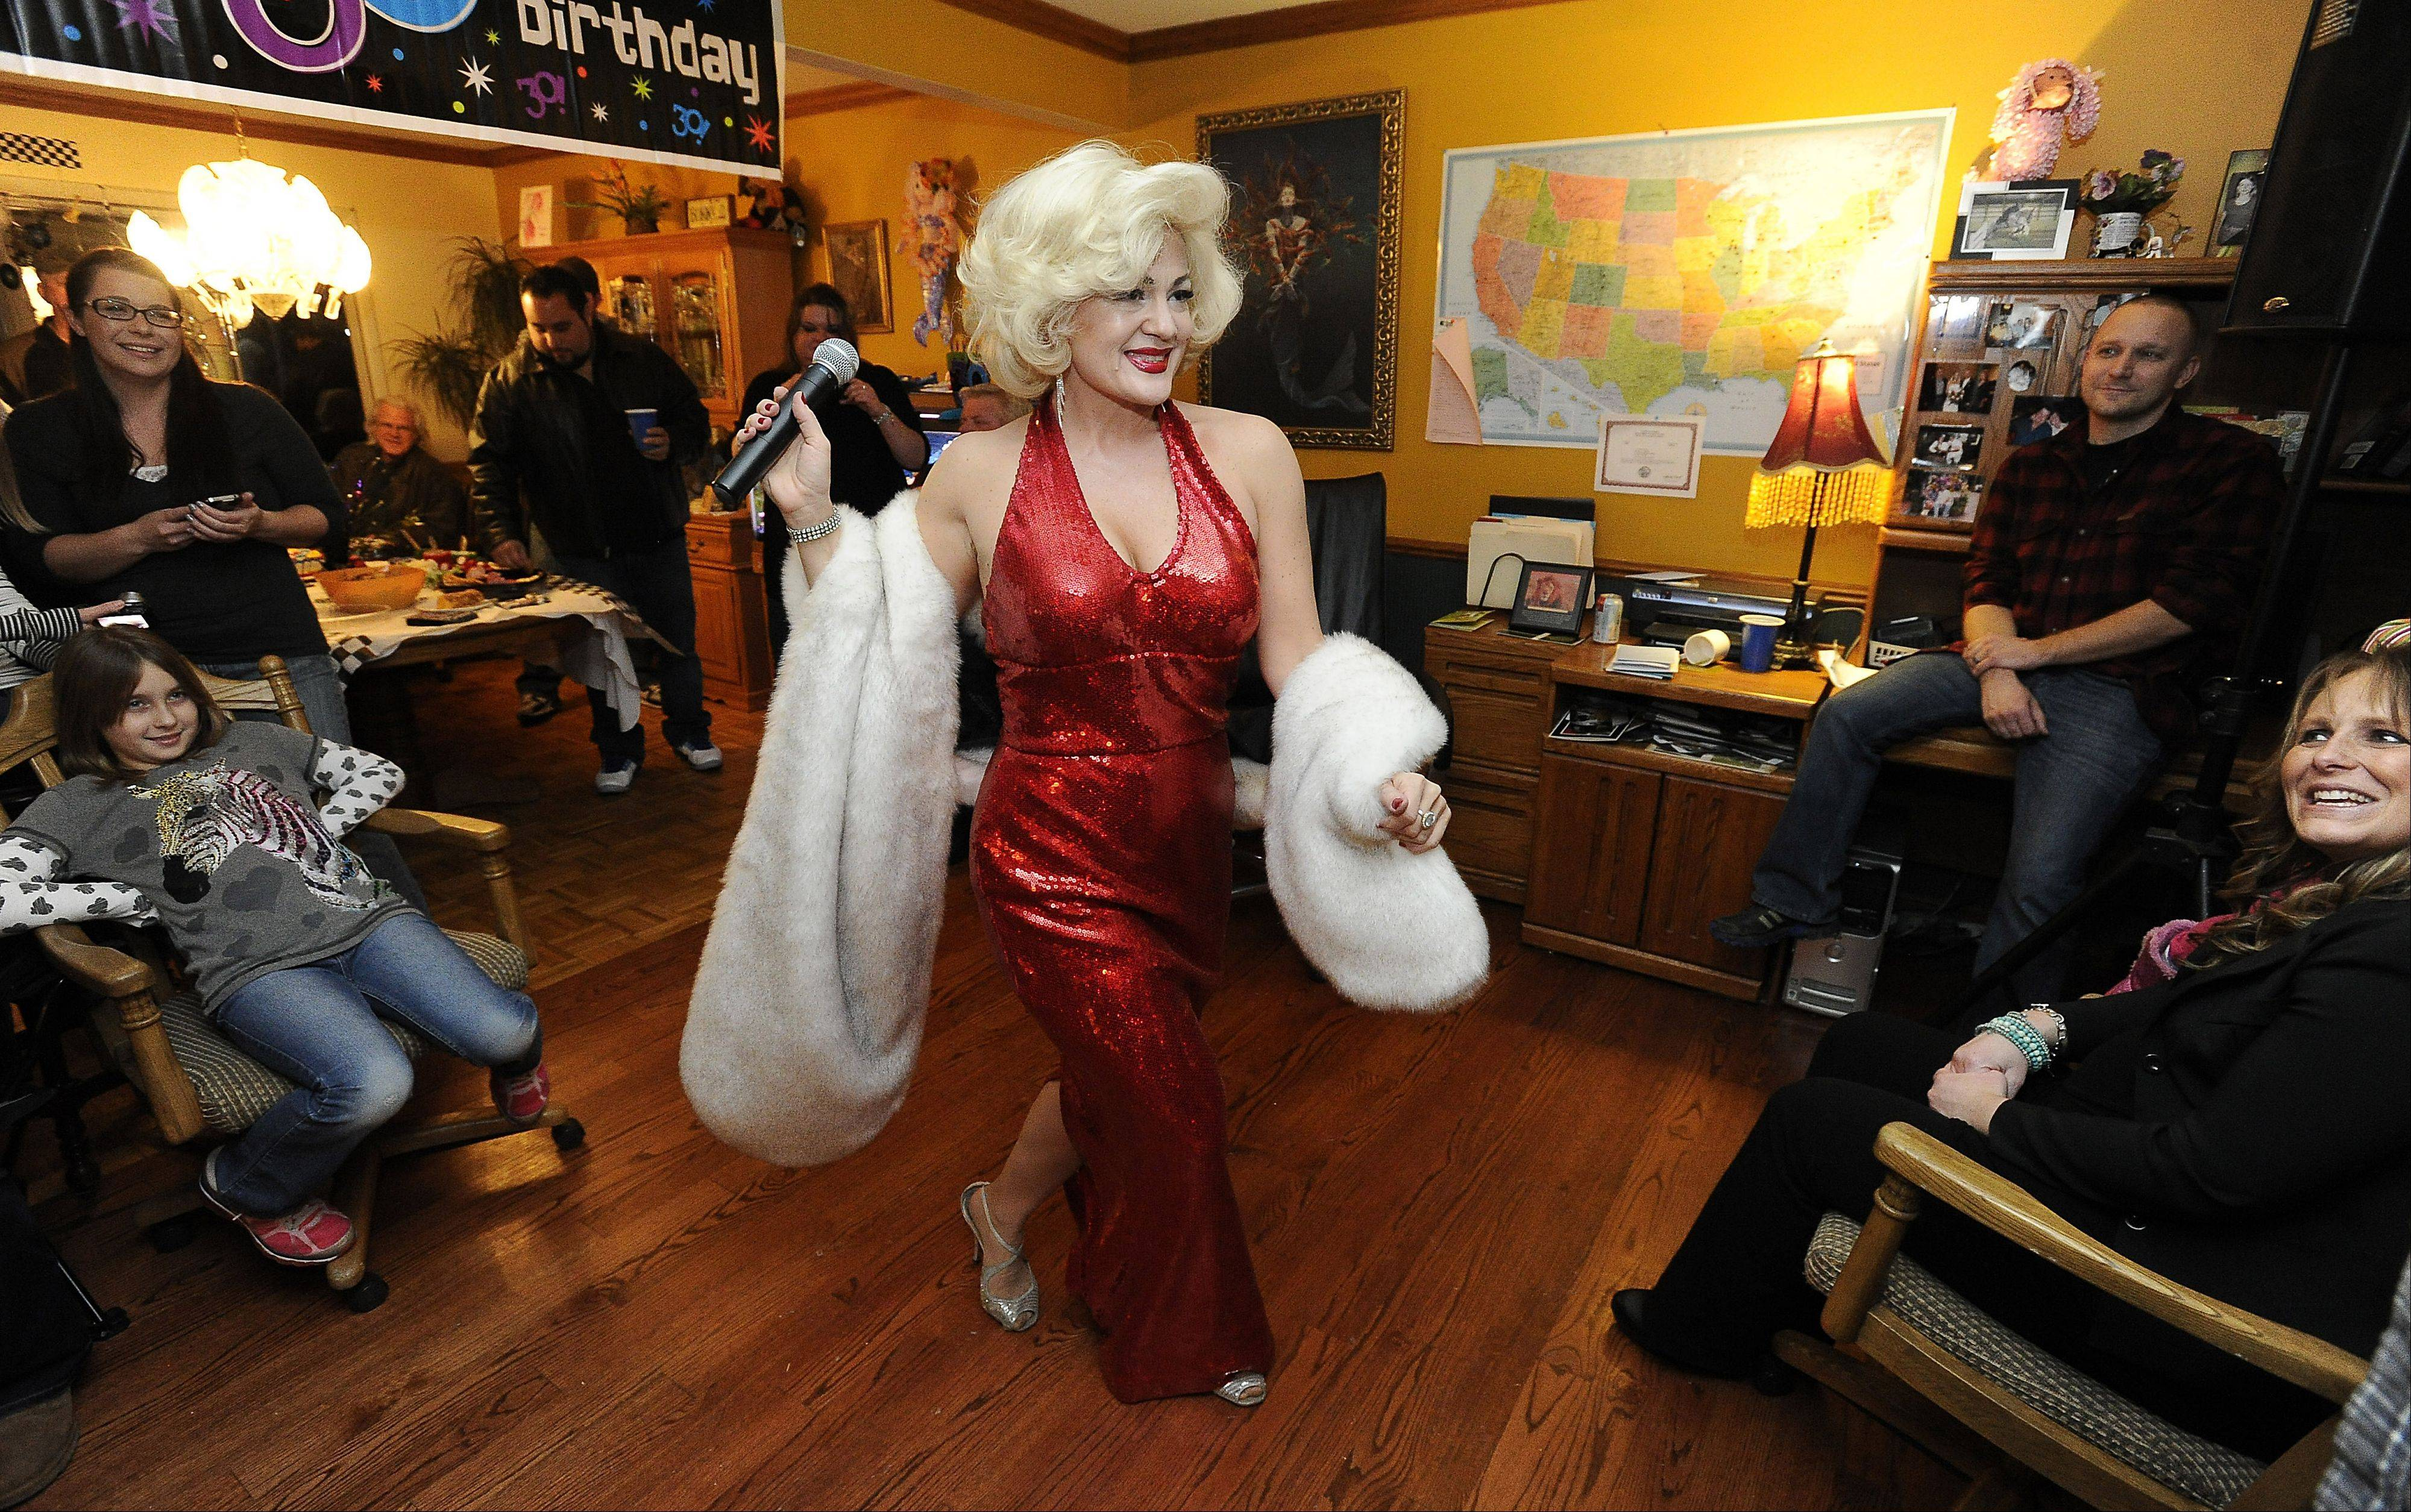 Sheri struts her Marilyn moves at a birthday party for Jaime Merlo in Winfield, getting smiles and giving red lipstick kisses on the faces and heads of the gentlemen as part of the show.